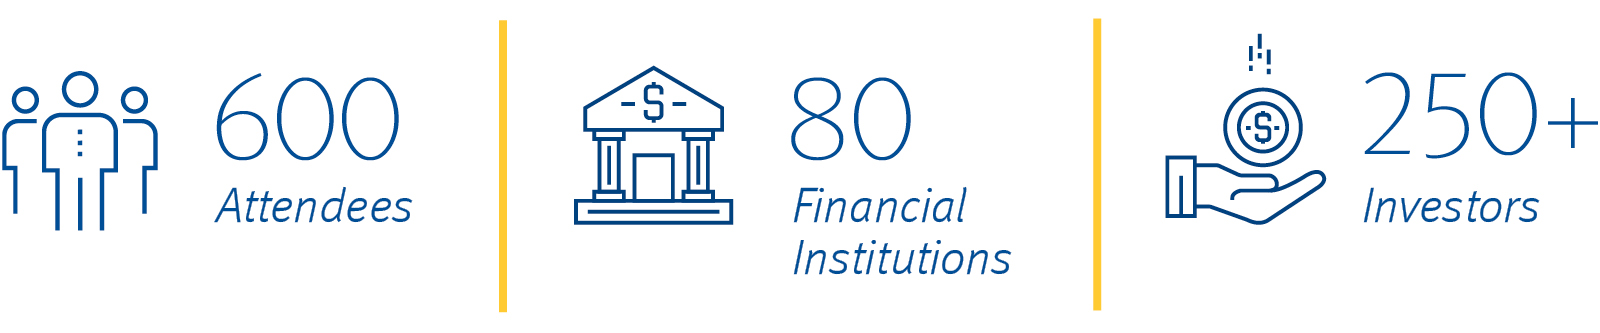 600 Attendees | 80 Financial Institutions | 250+ Investors